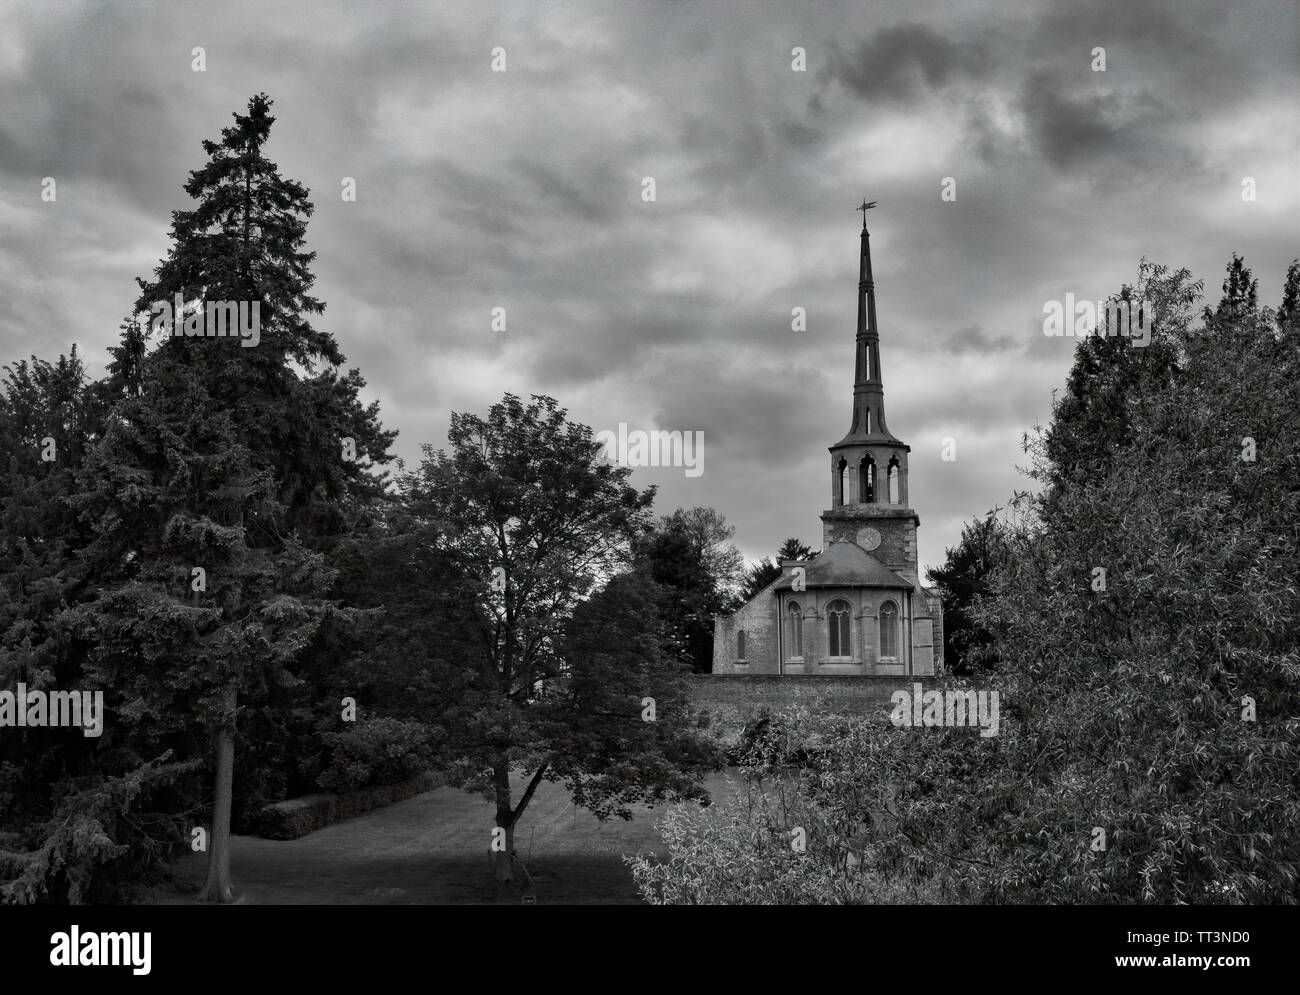 St Peter's Church, Wallingford - Stock Image